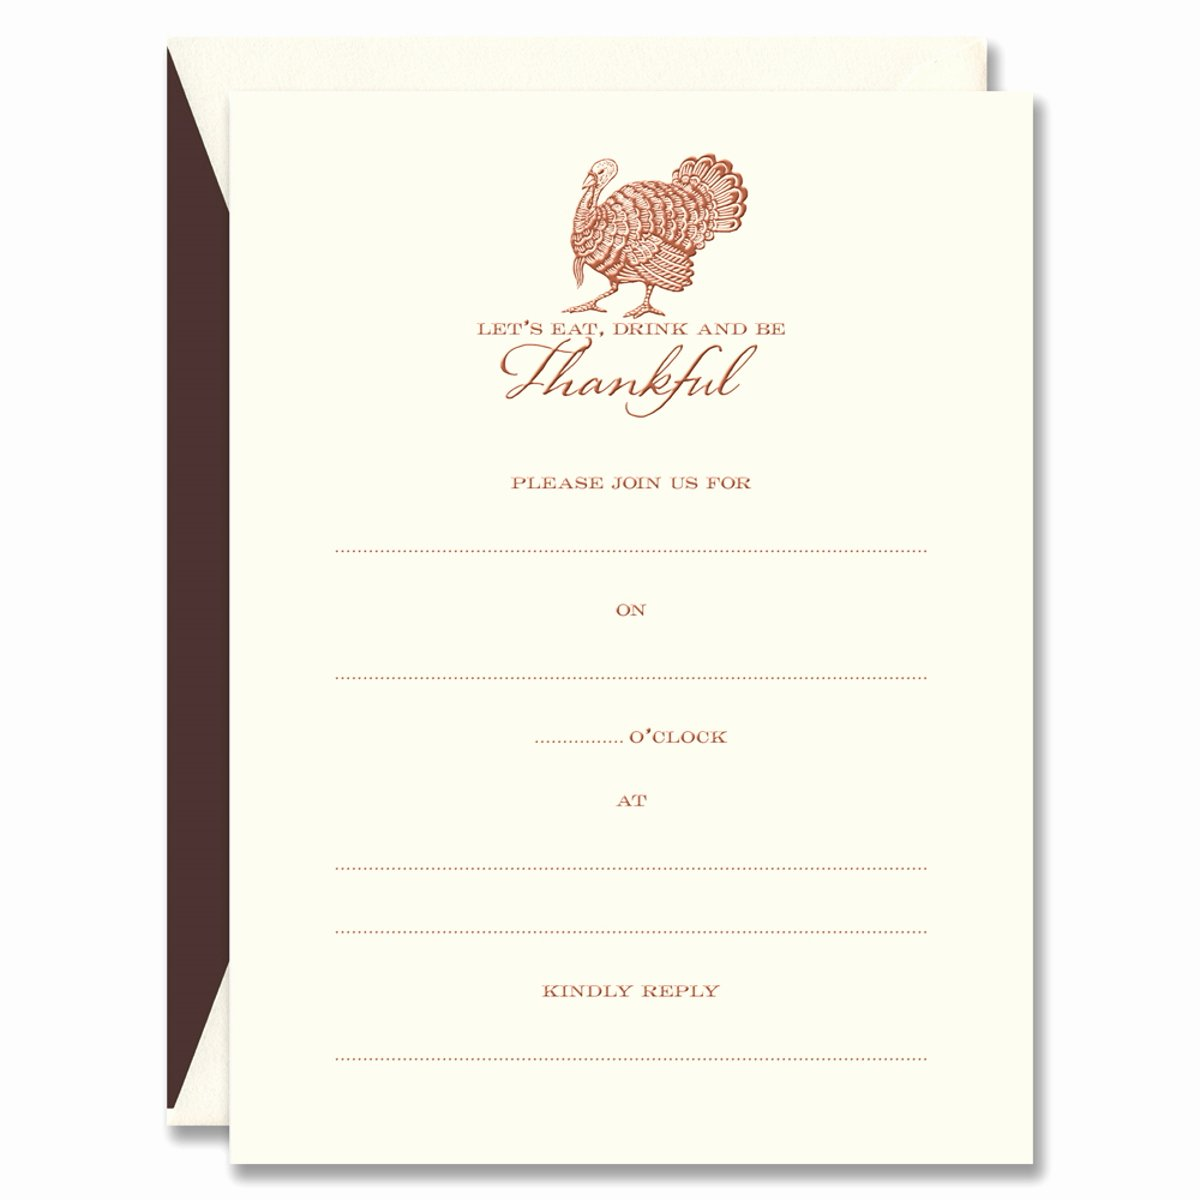 Engraving Templates Letters Inspirational Turkey Invitation Card Template with Engraved Letter